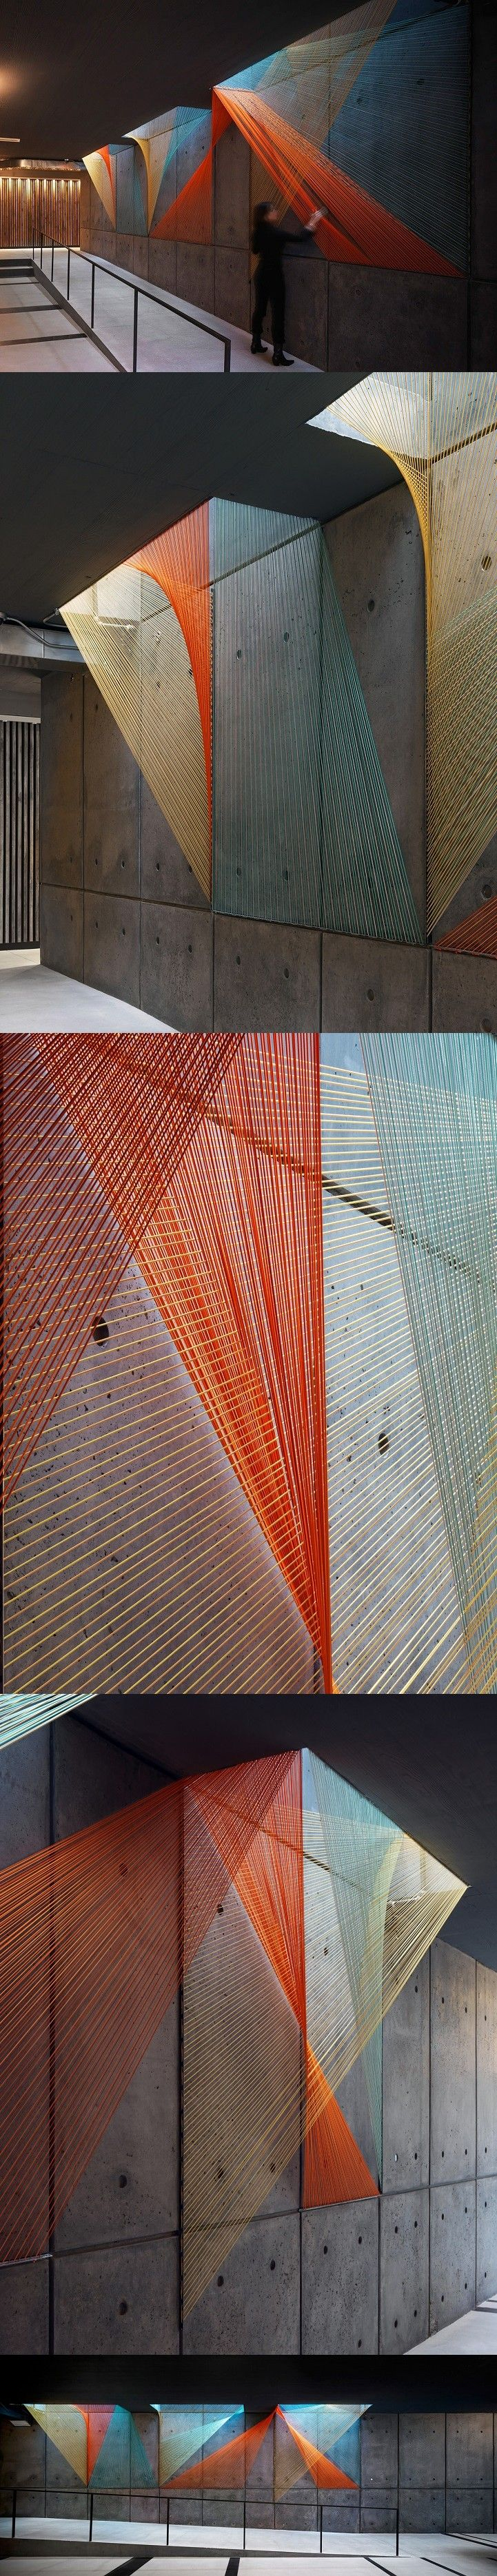 Playful Rope Installation by Inés Esnal Adds Multifaceted Color to Gray Concrete…